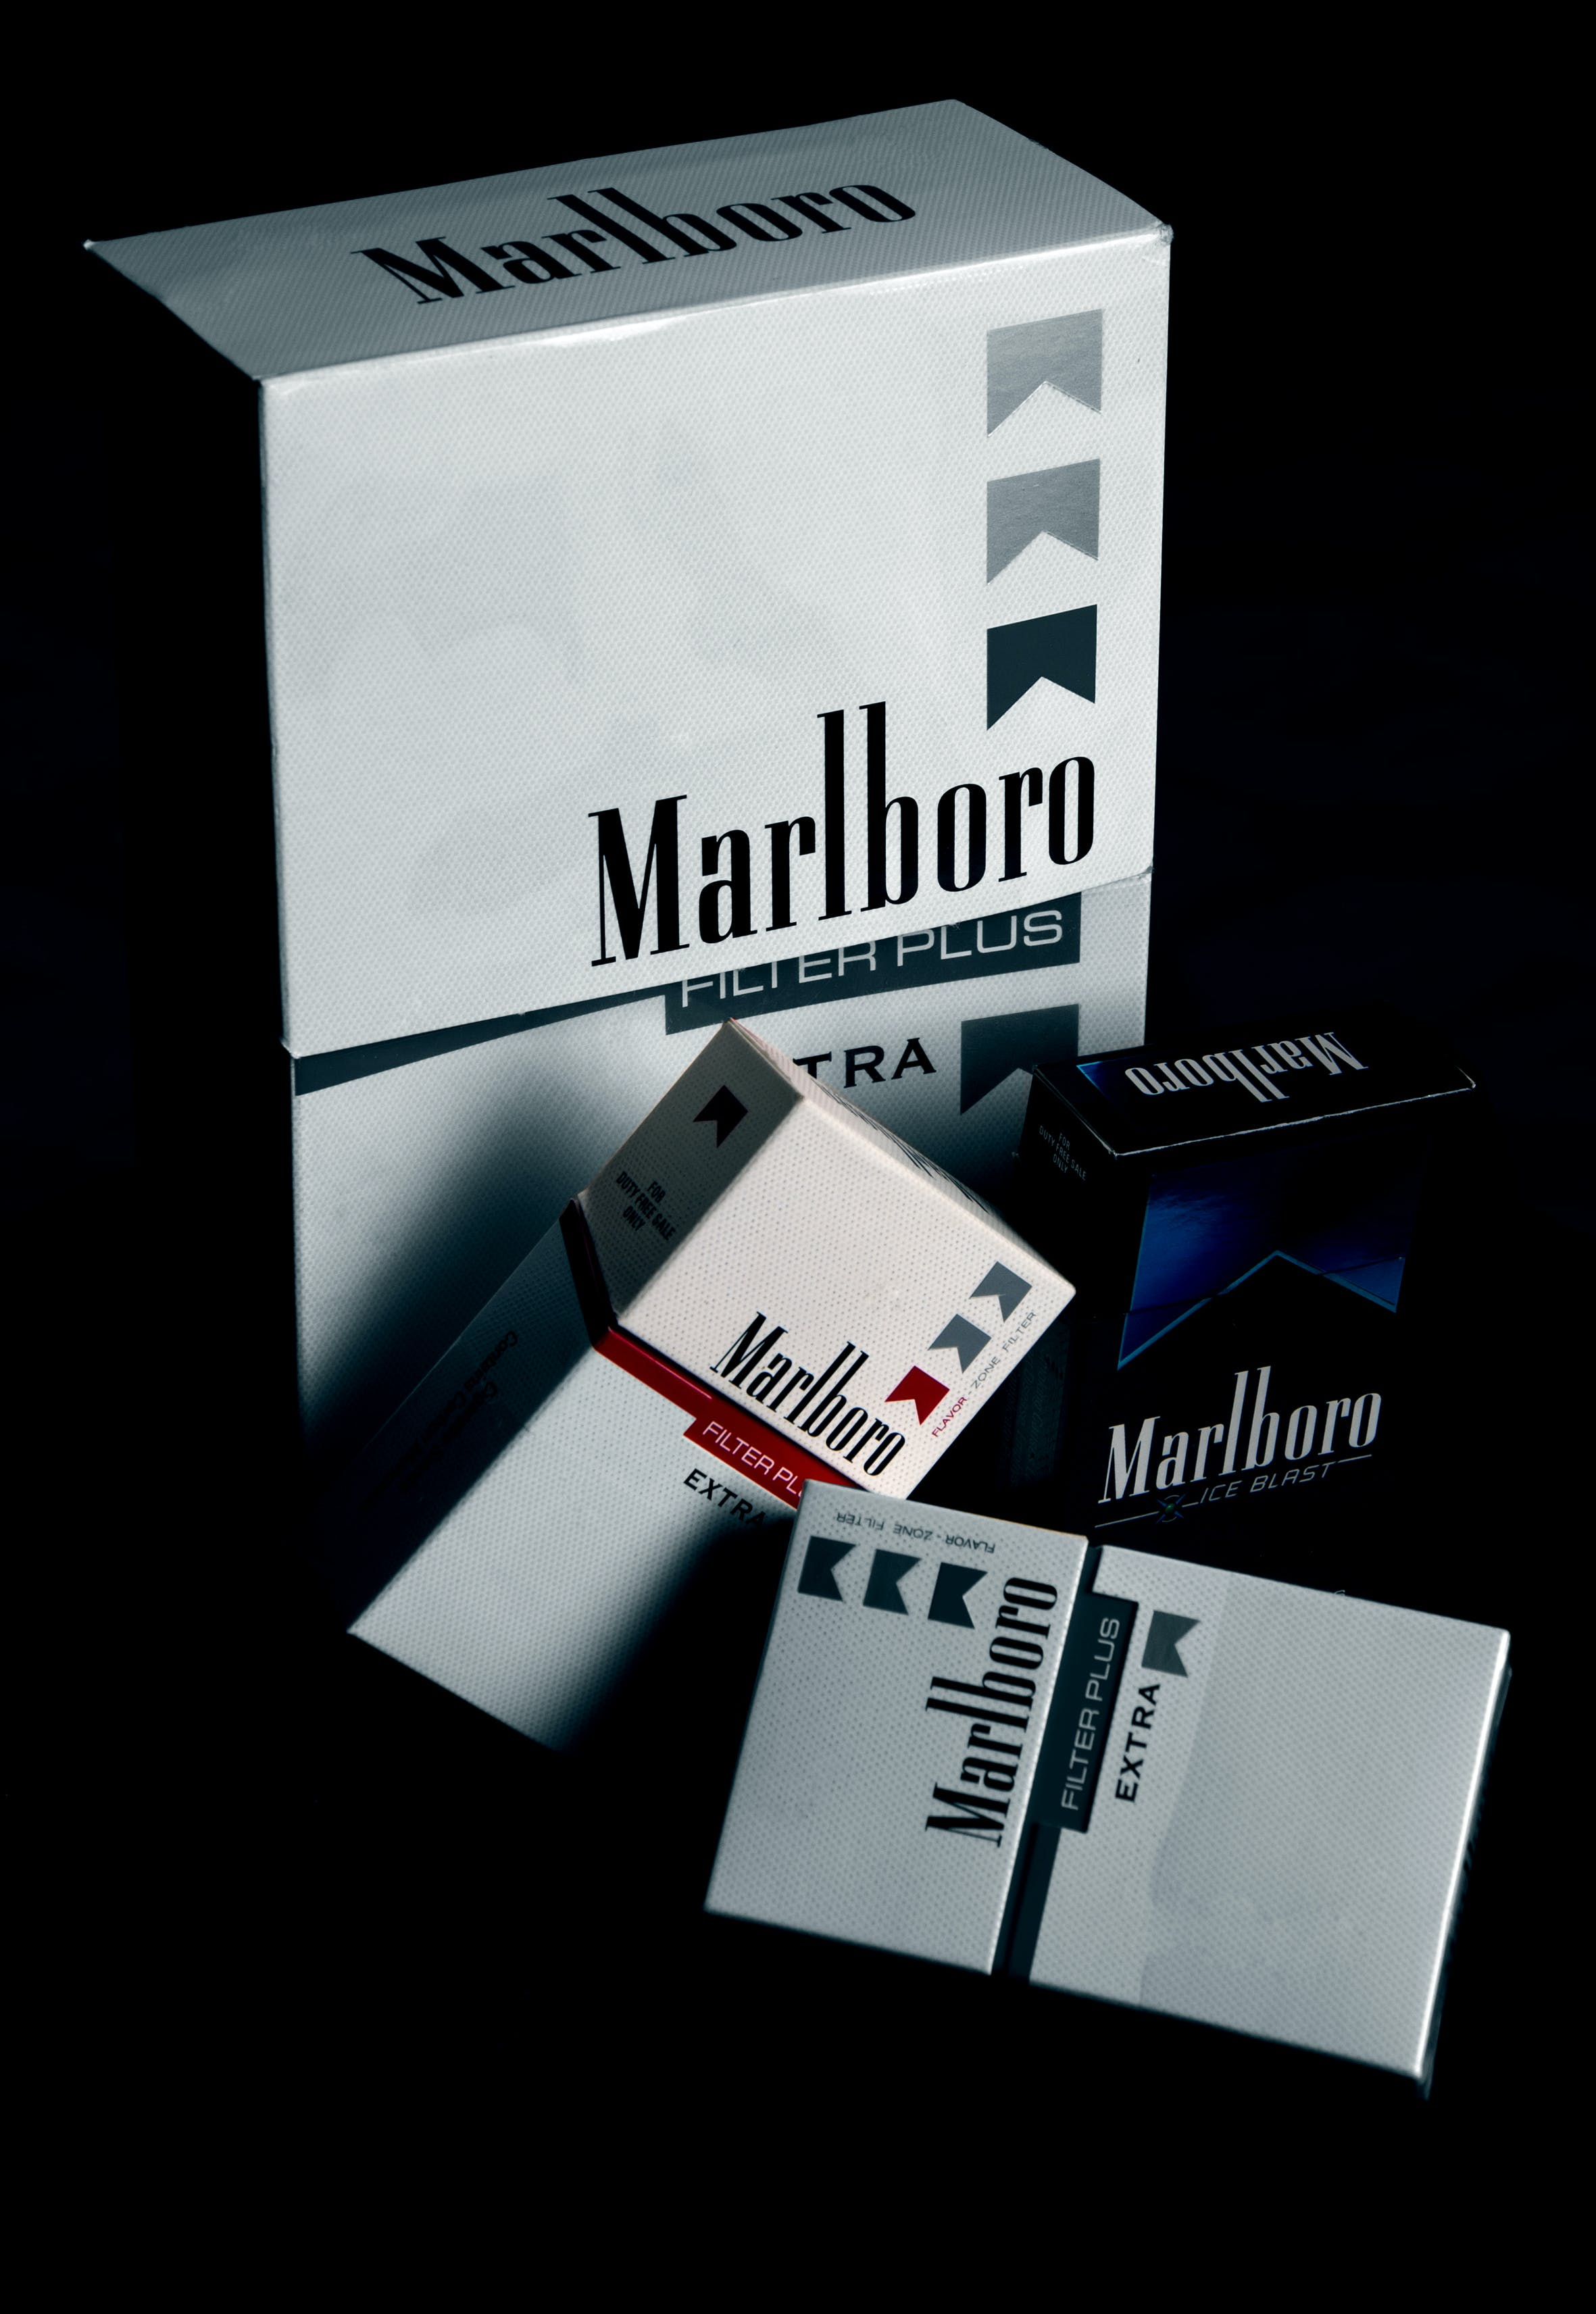 Free stock photo of unhealthy, cigarettes, smoking, marlboro